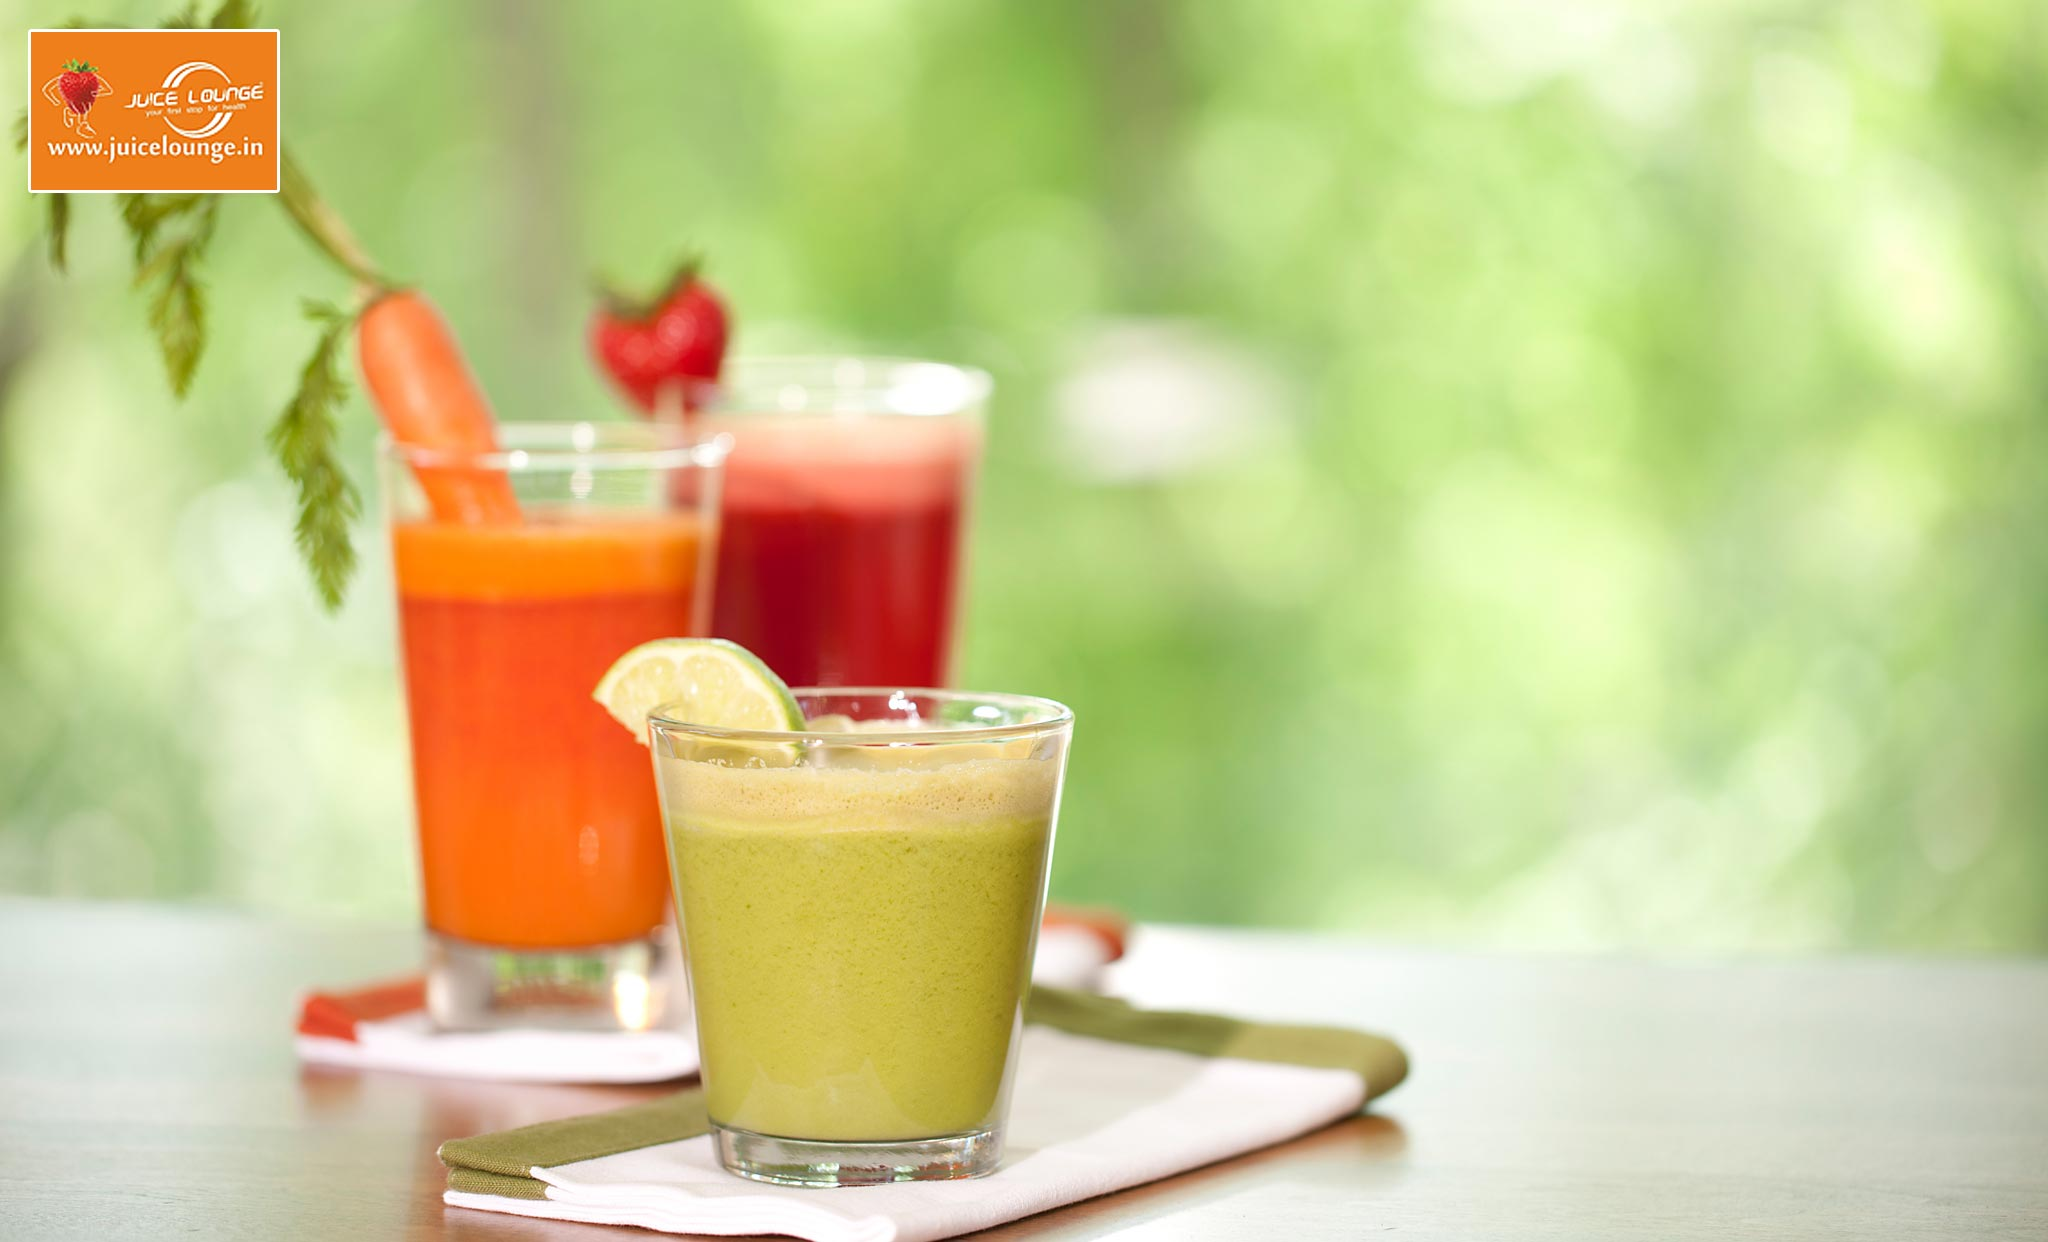 Juice lounge opens its 60th outlet